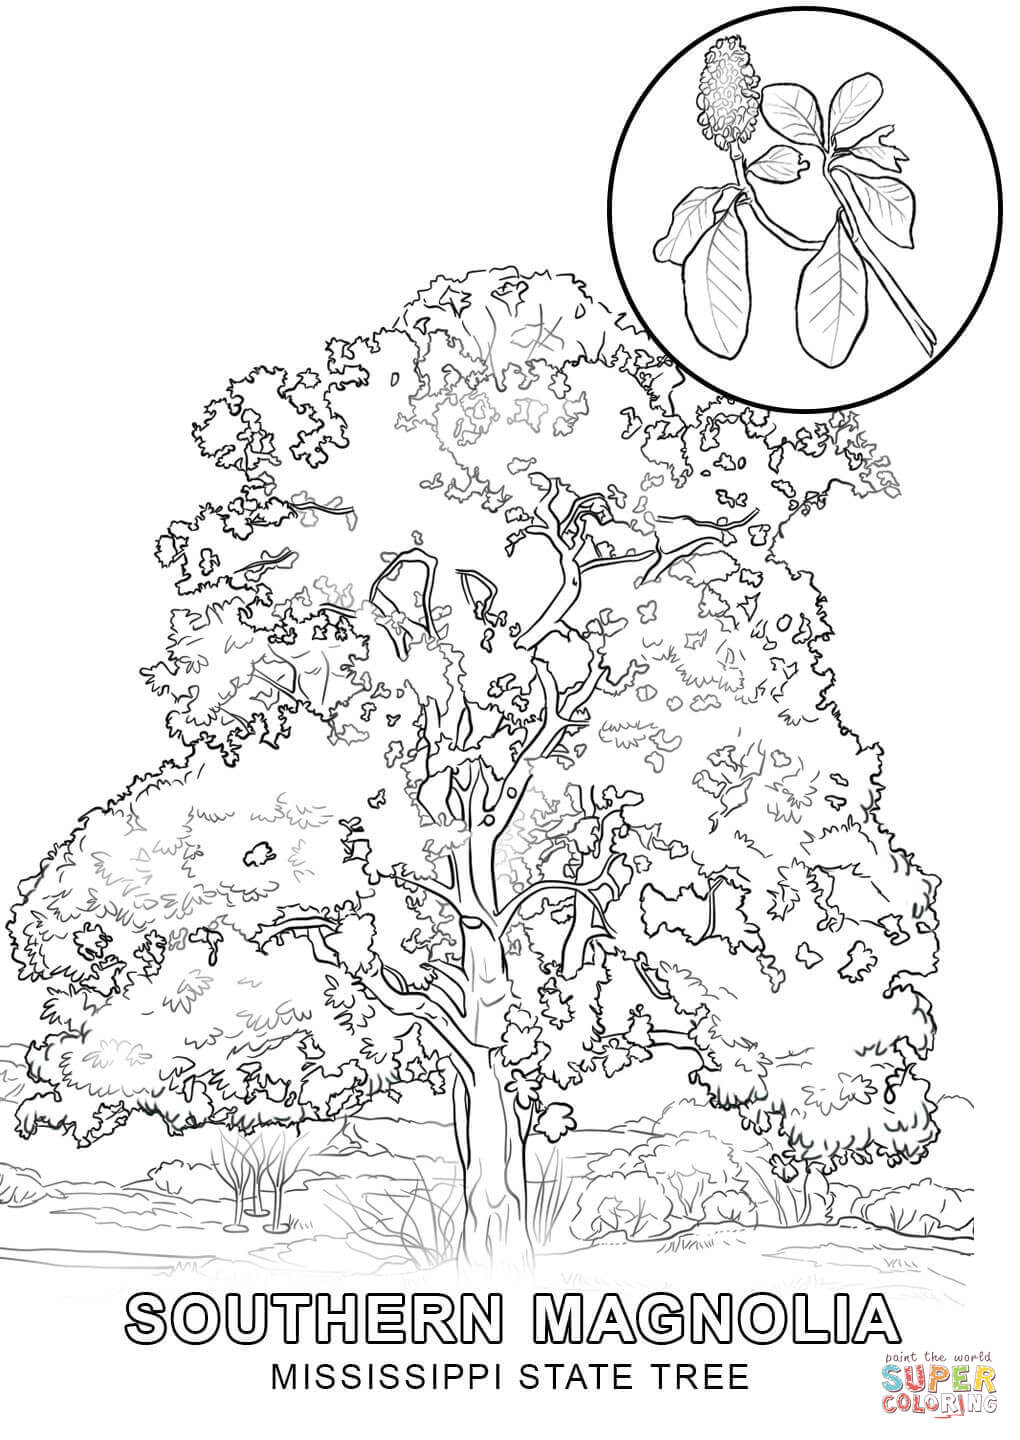 state tree coloring pages minnesota state tree coloring page free printable pages coloring state tree